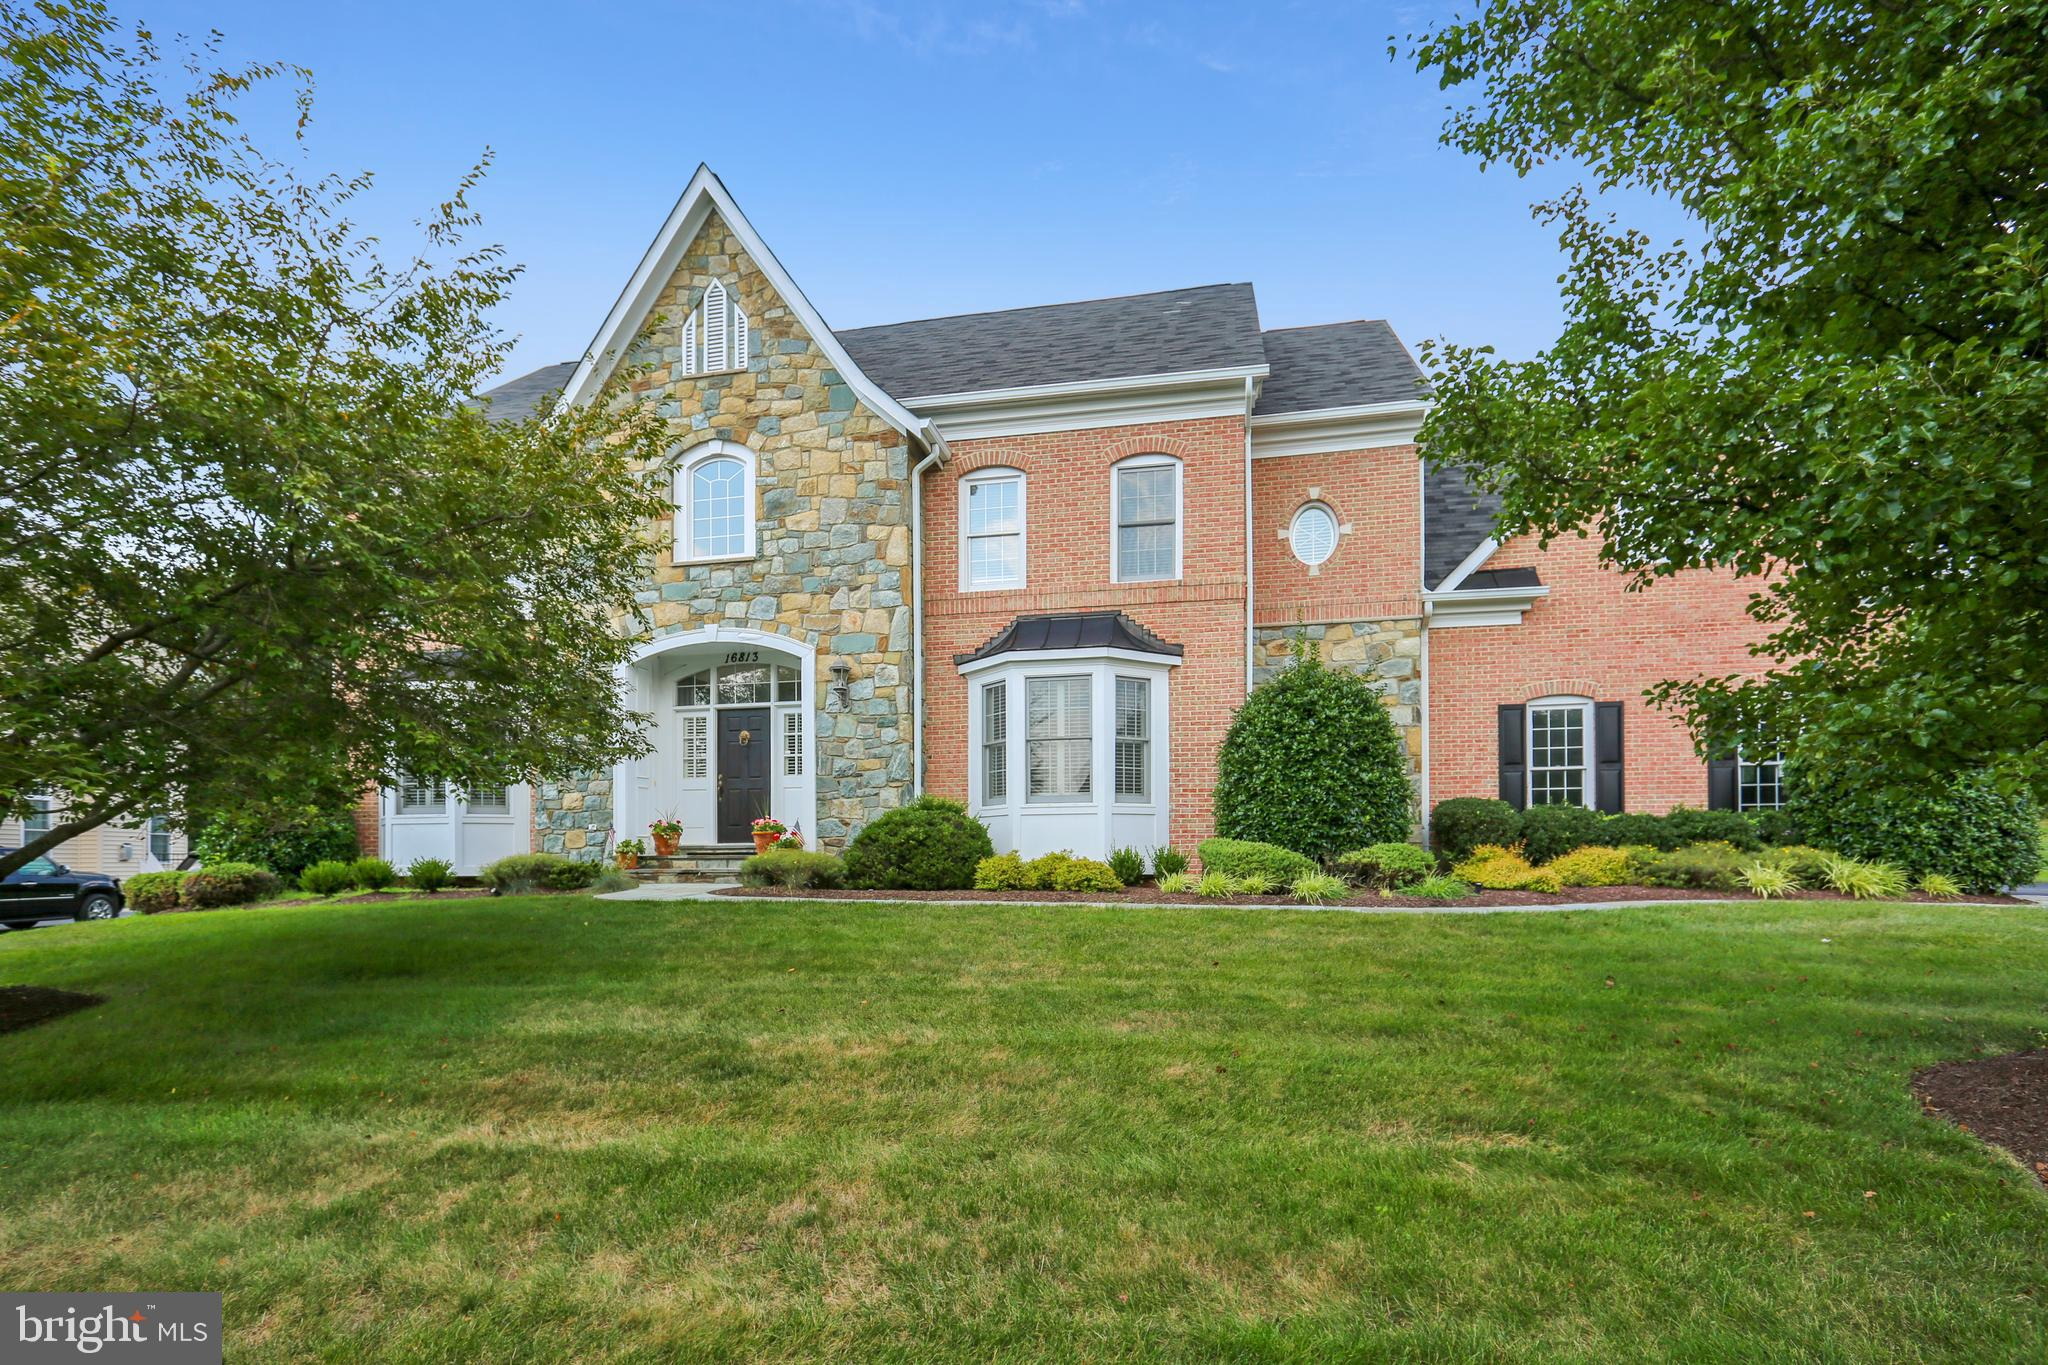 16813 HARBOUR TOWN Dr, Silver Spring, MD, 20905